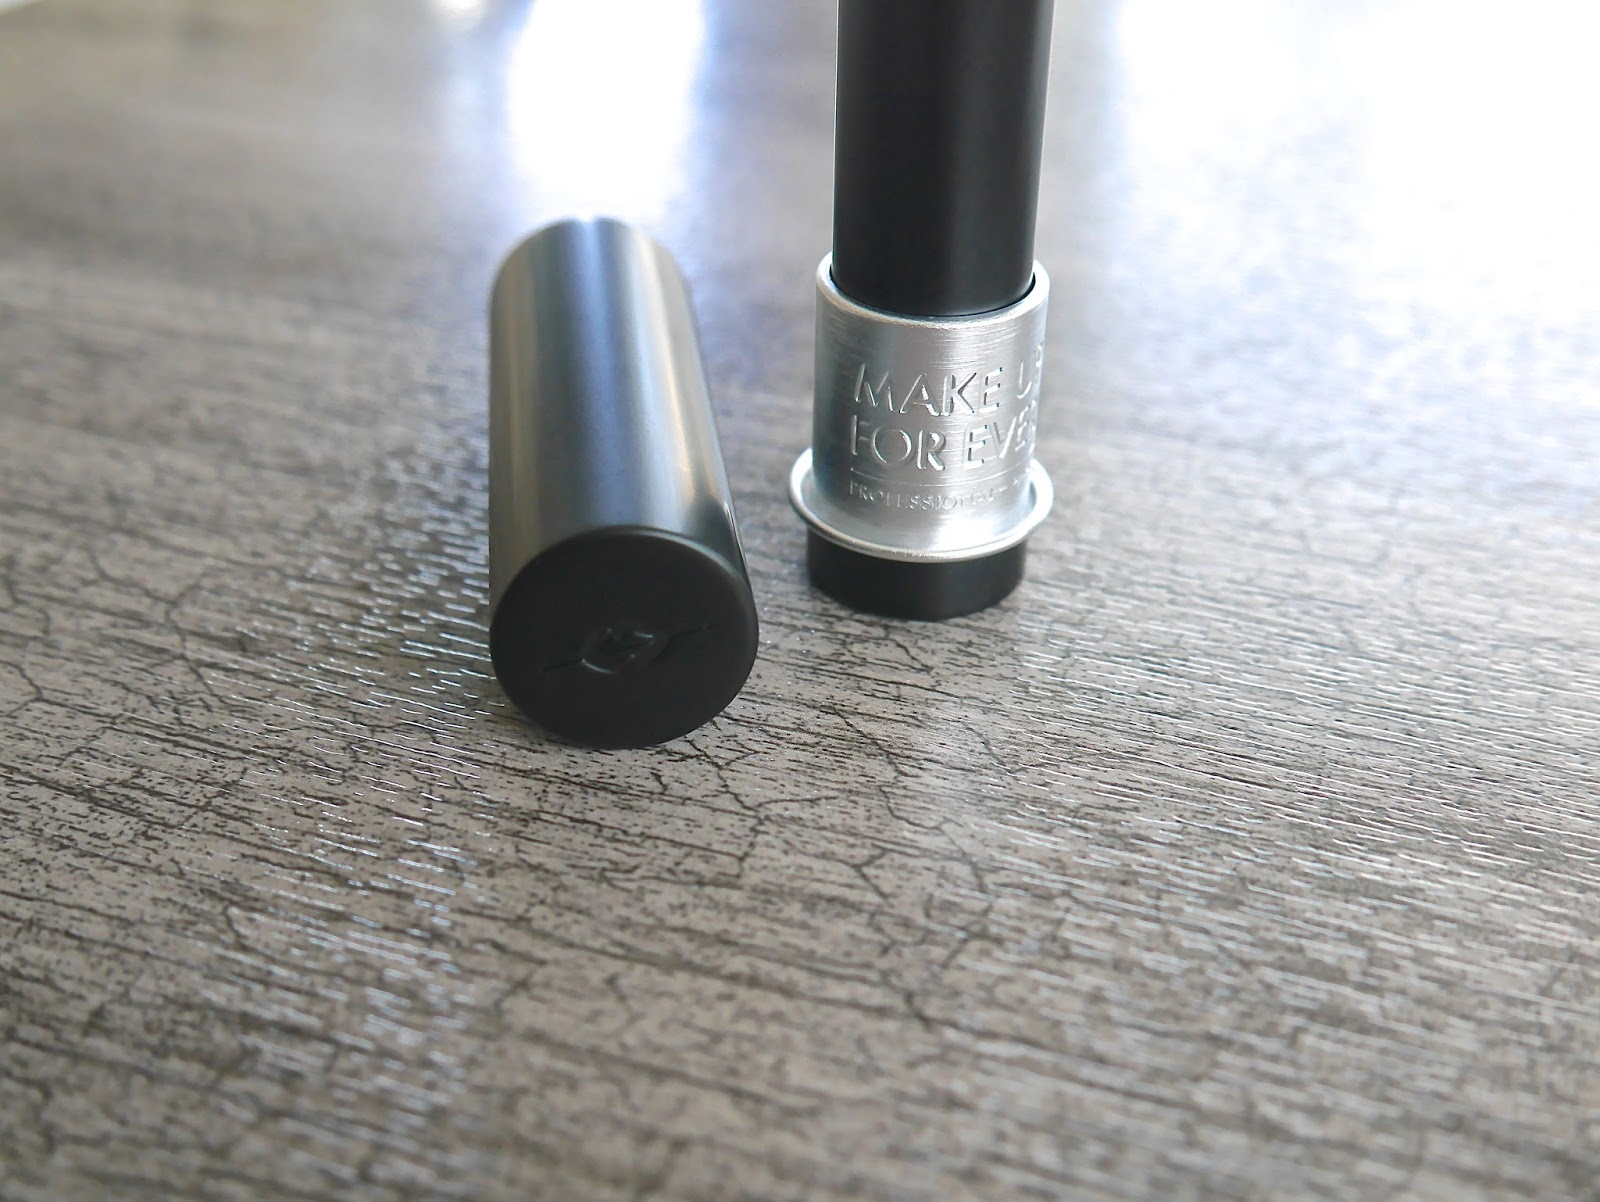 Make Up For Ever, lipstick, makeup, creamy, hydrating, high end